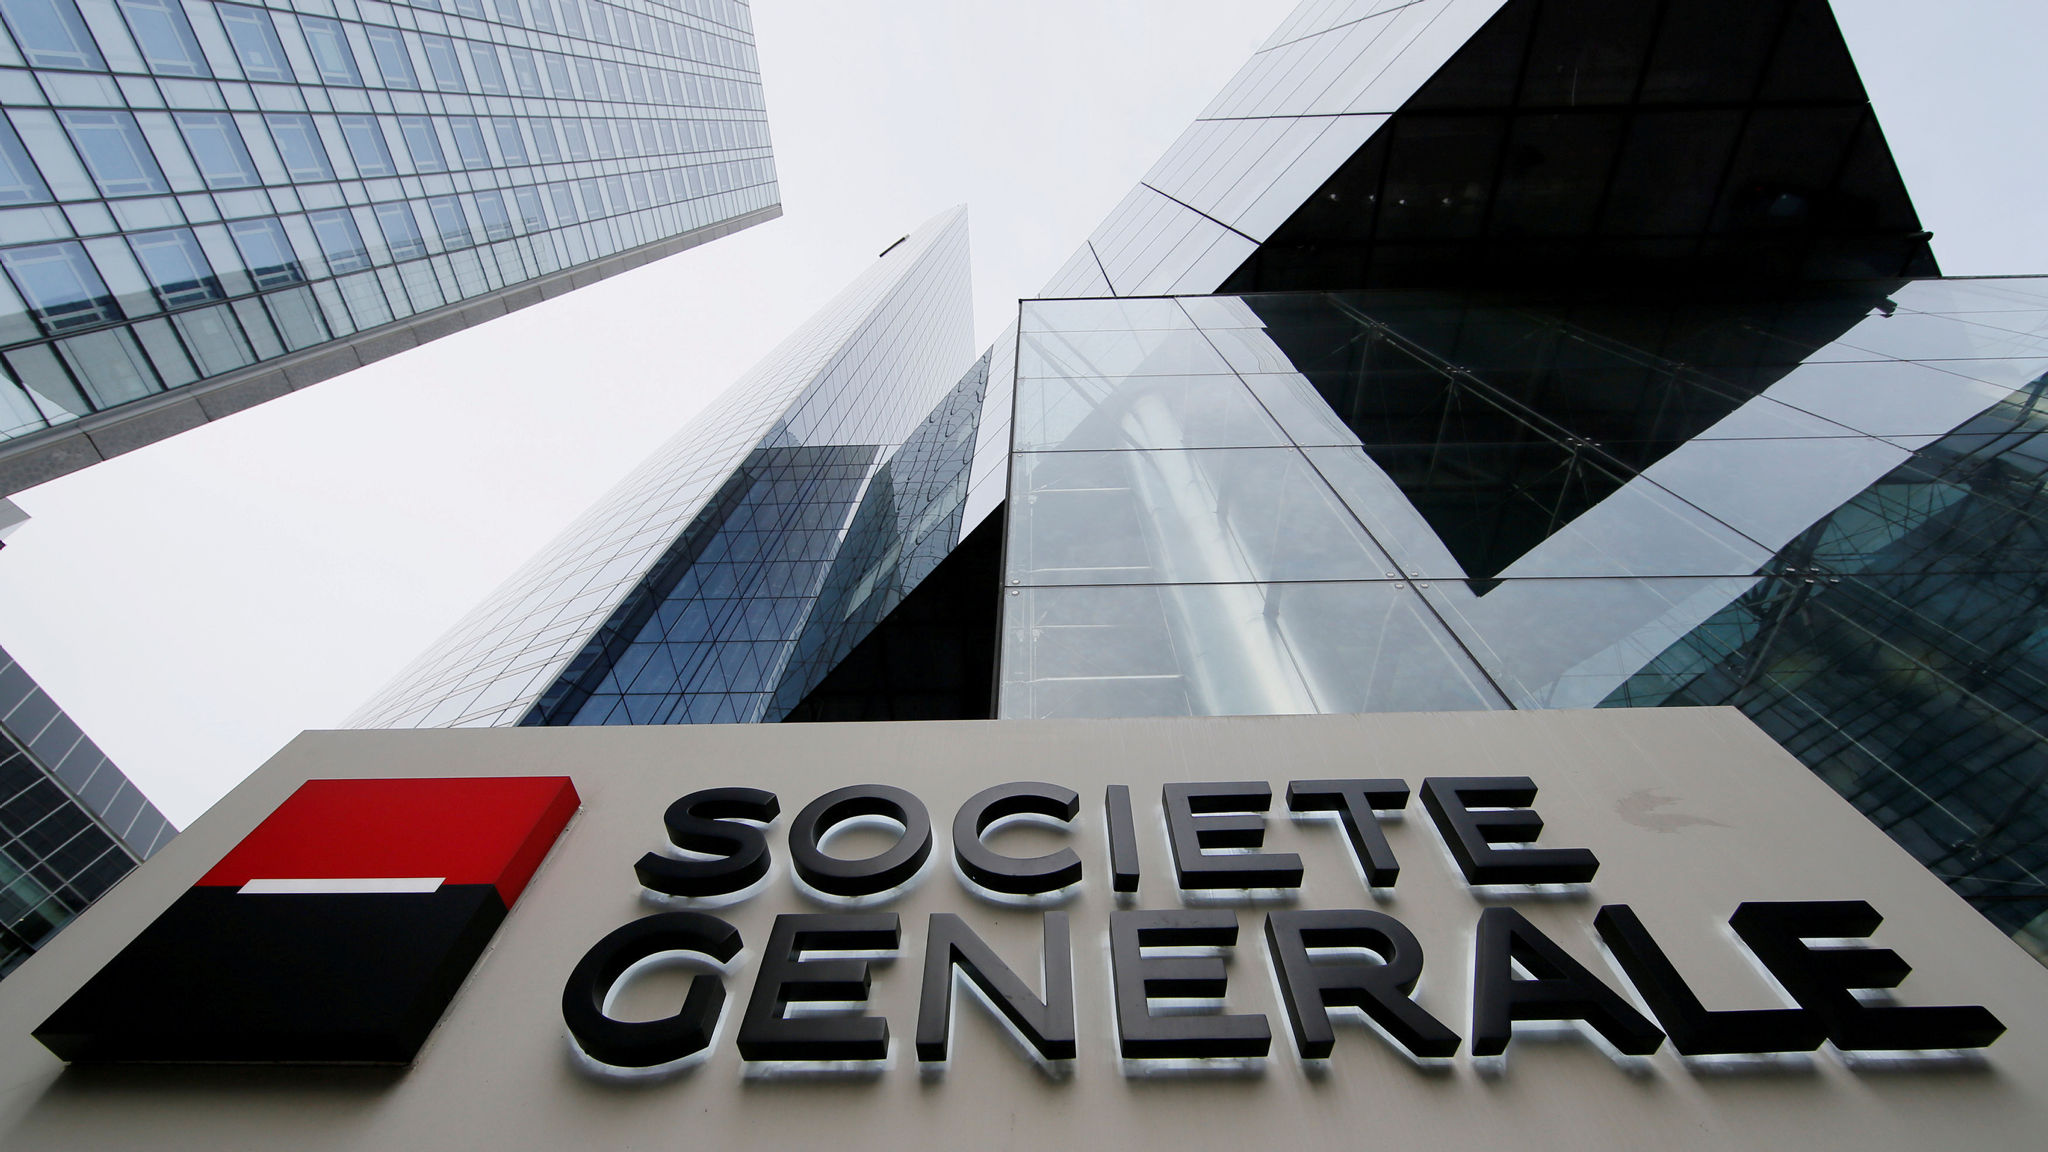 SocGen cuts 1,600 jobs as investment bank overhauled | Financial Times